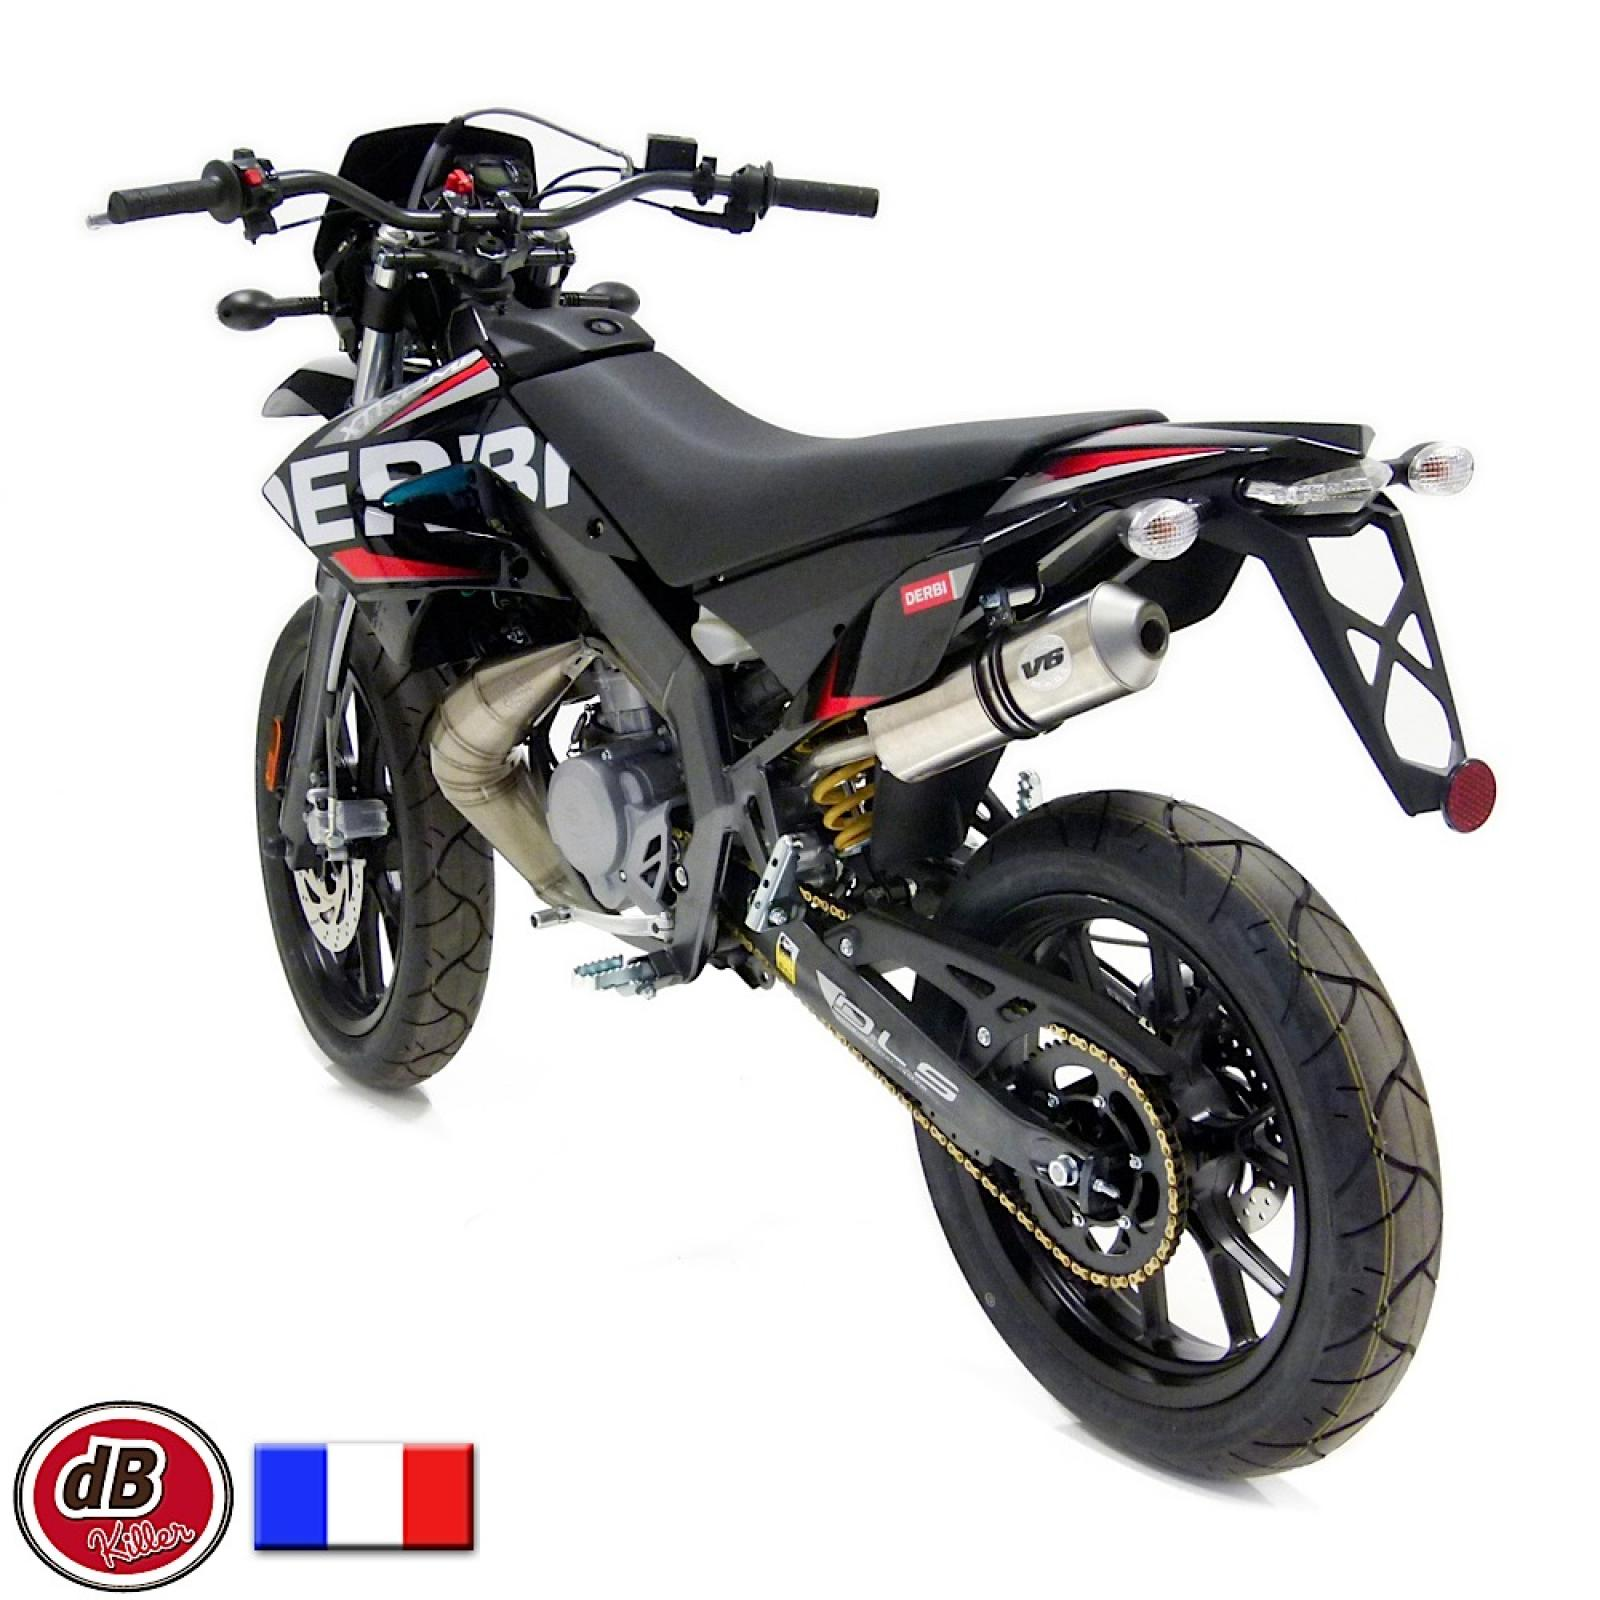 Derbi Senda DRD 50X-Treme SM 2011 images #153635